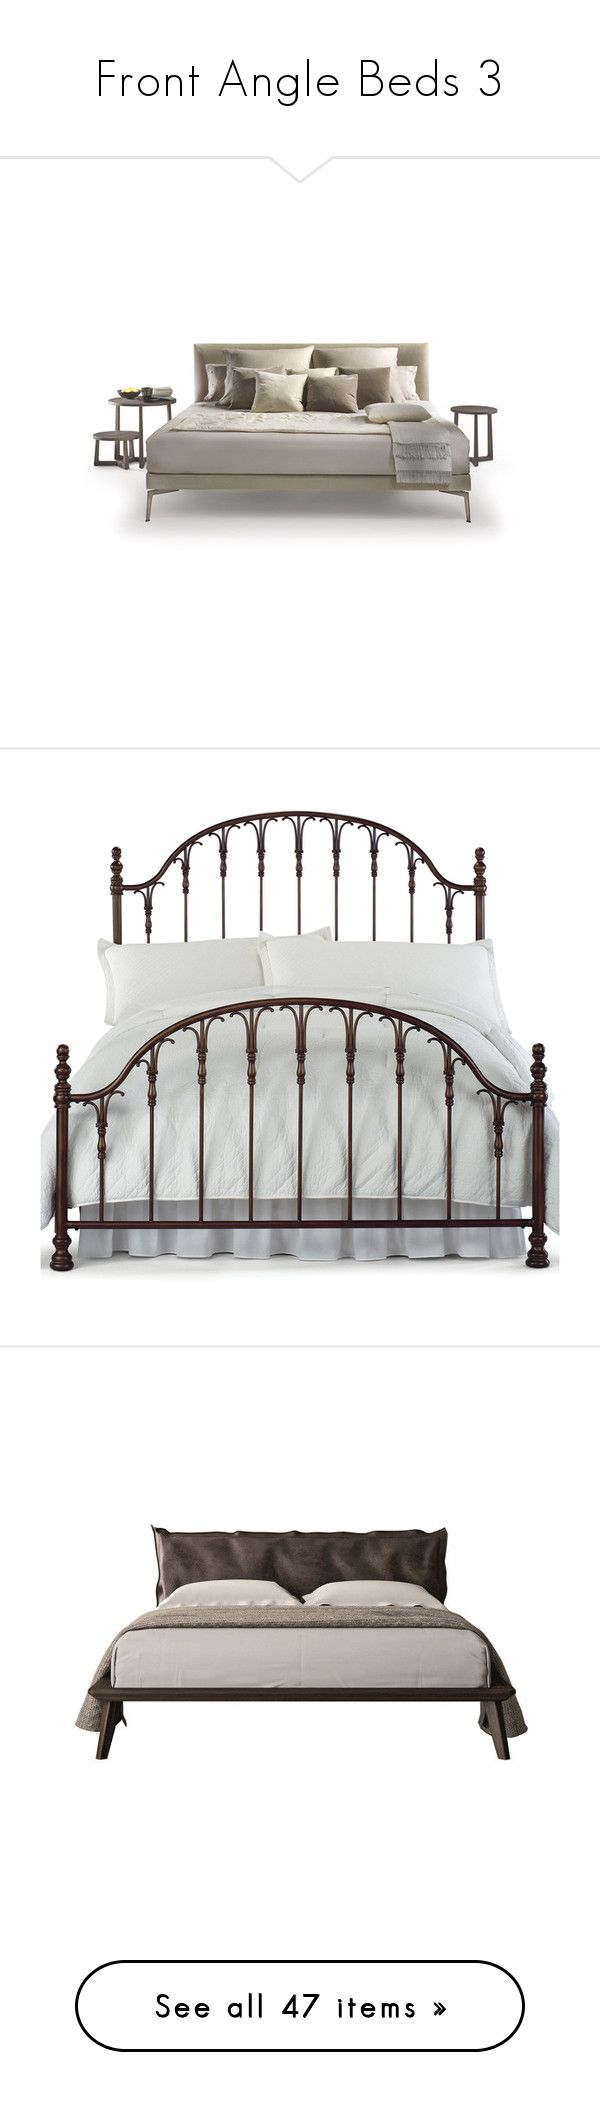 """""""Front Angle Beds 3"""" by libbylu116-1 ❤ liked on Polyvore featuring home, furniture, beds, bedroom, decor, borders, filler, picture frame, king size bed and queen metal headboard"""